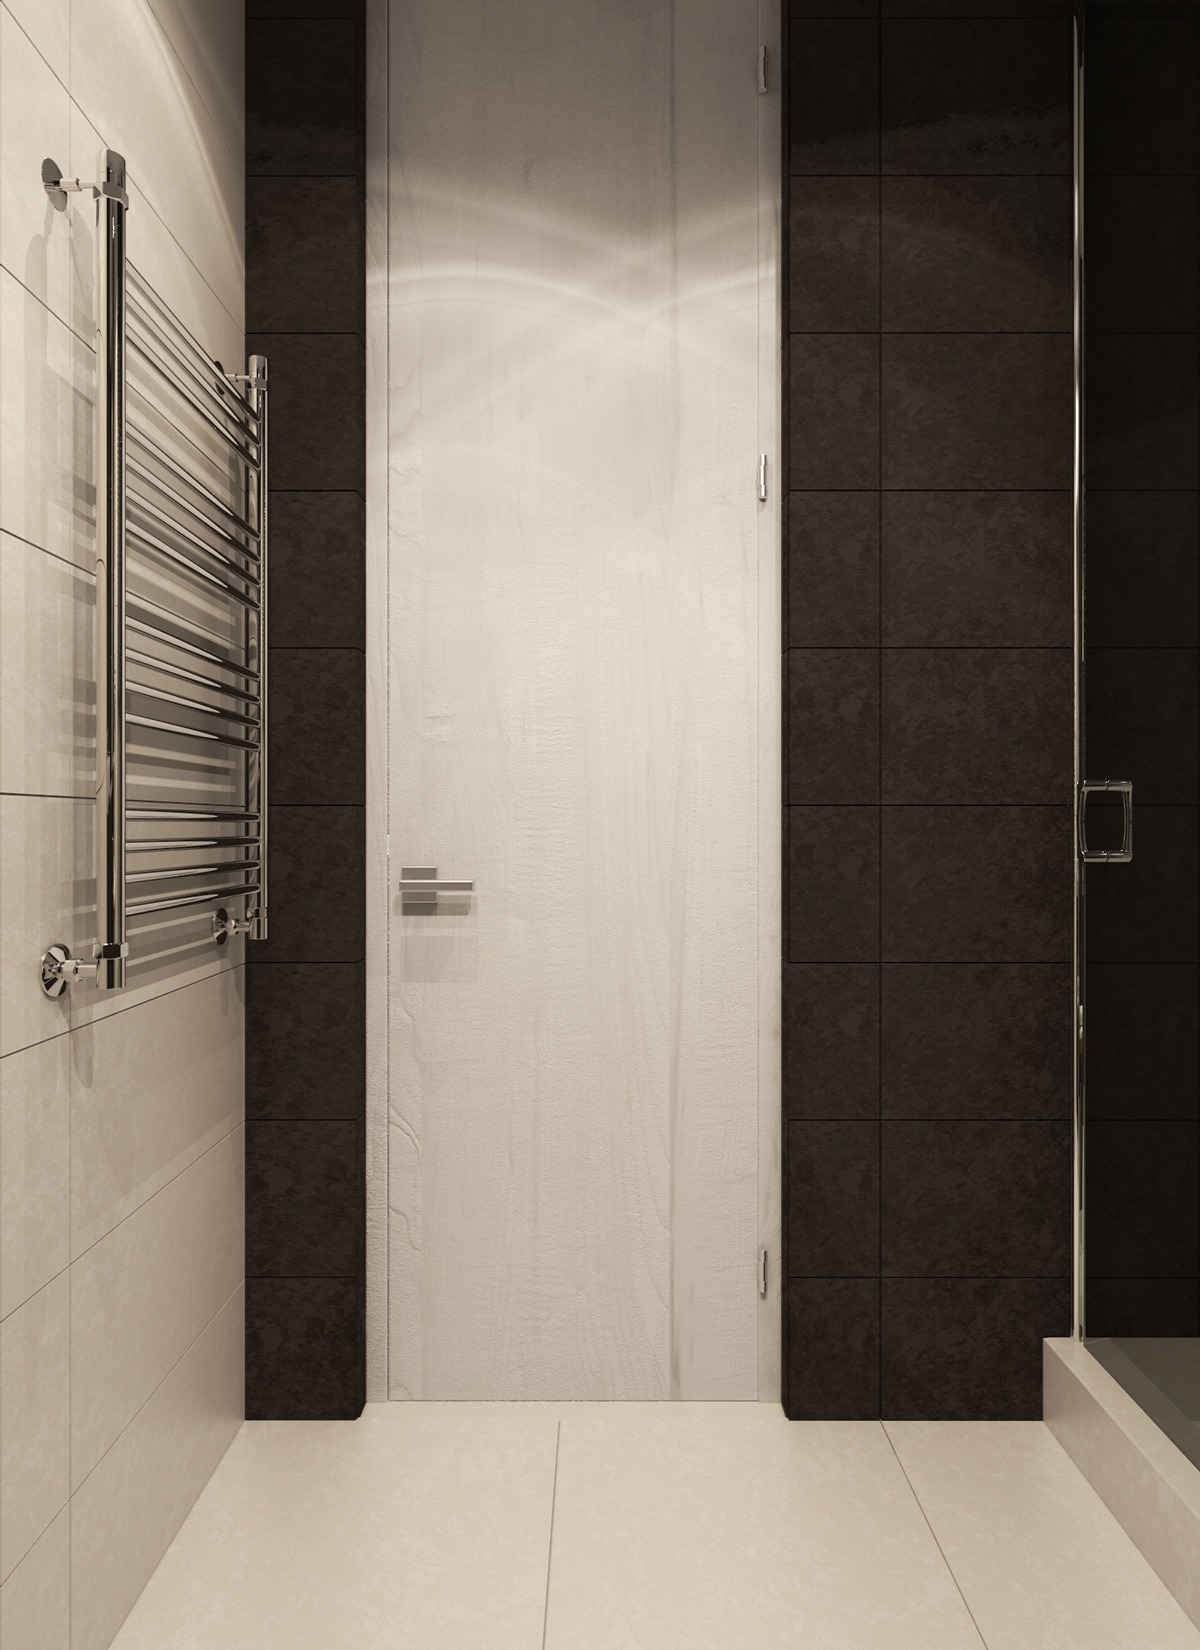 Bathroom Design - A contemporary apartment with lots of open space